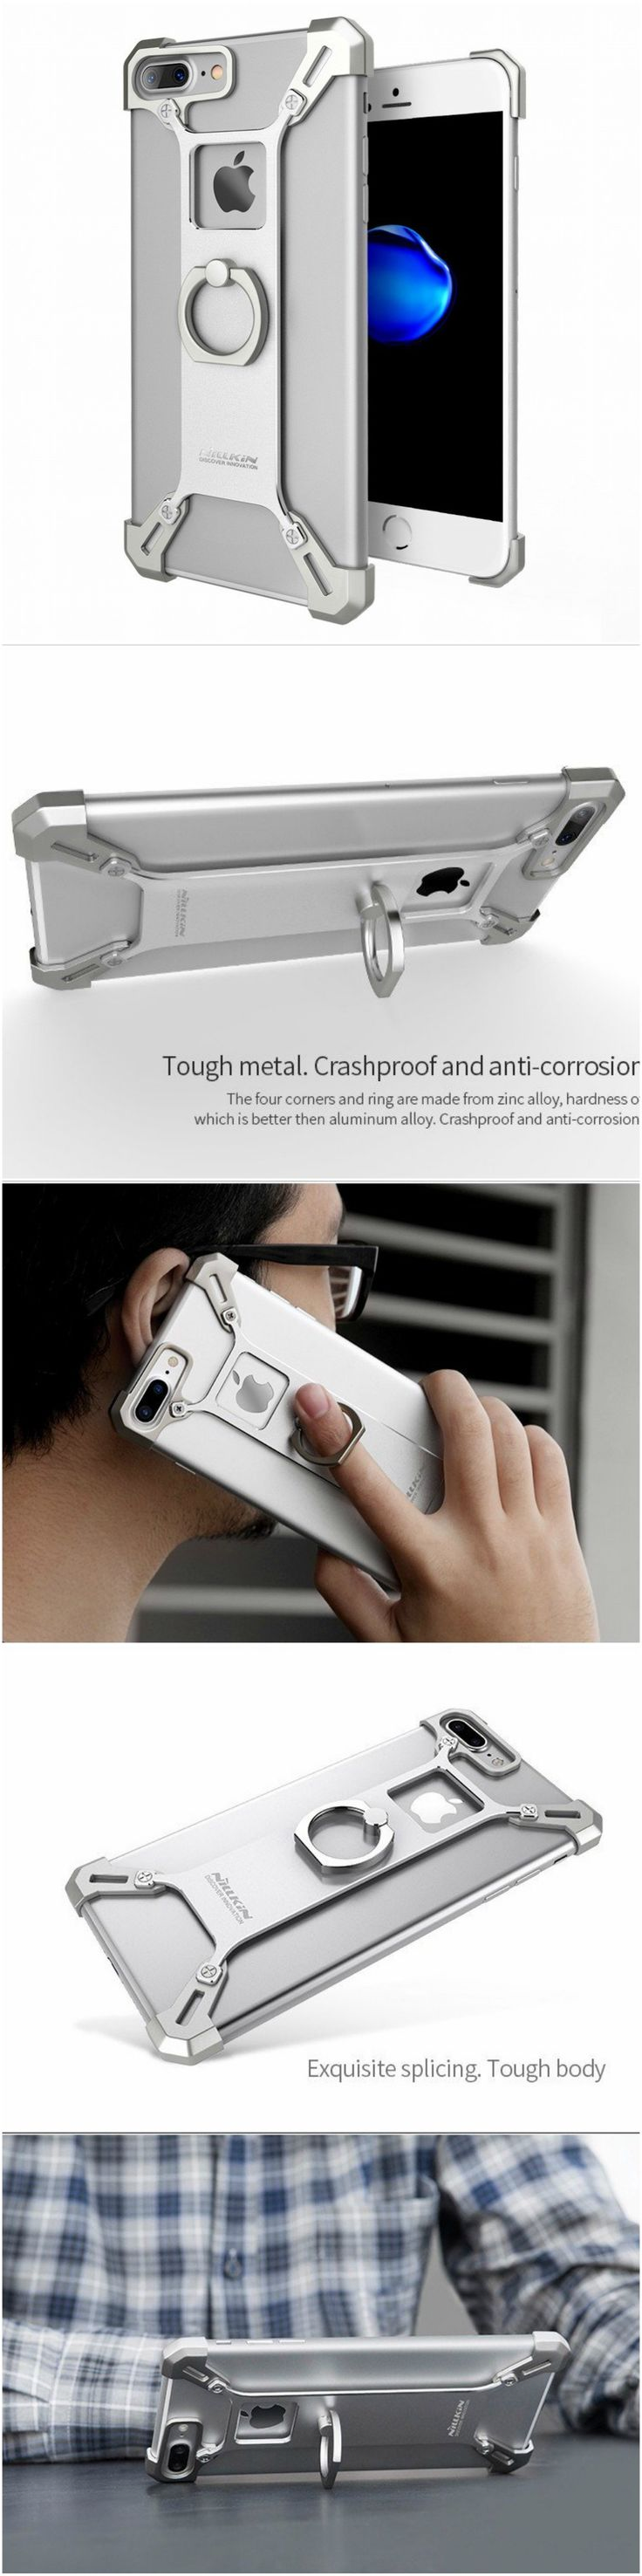 New iPhone 7 Plus fashion slim metal case with style for the savvy users. Fits well into workout and gym clothes. Great gift accessory products for iPhone 7 Plus owners, gizmos lovers, current smartphone and cellphone owners, shoppers who o are active in health and fitness and travel  #tech